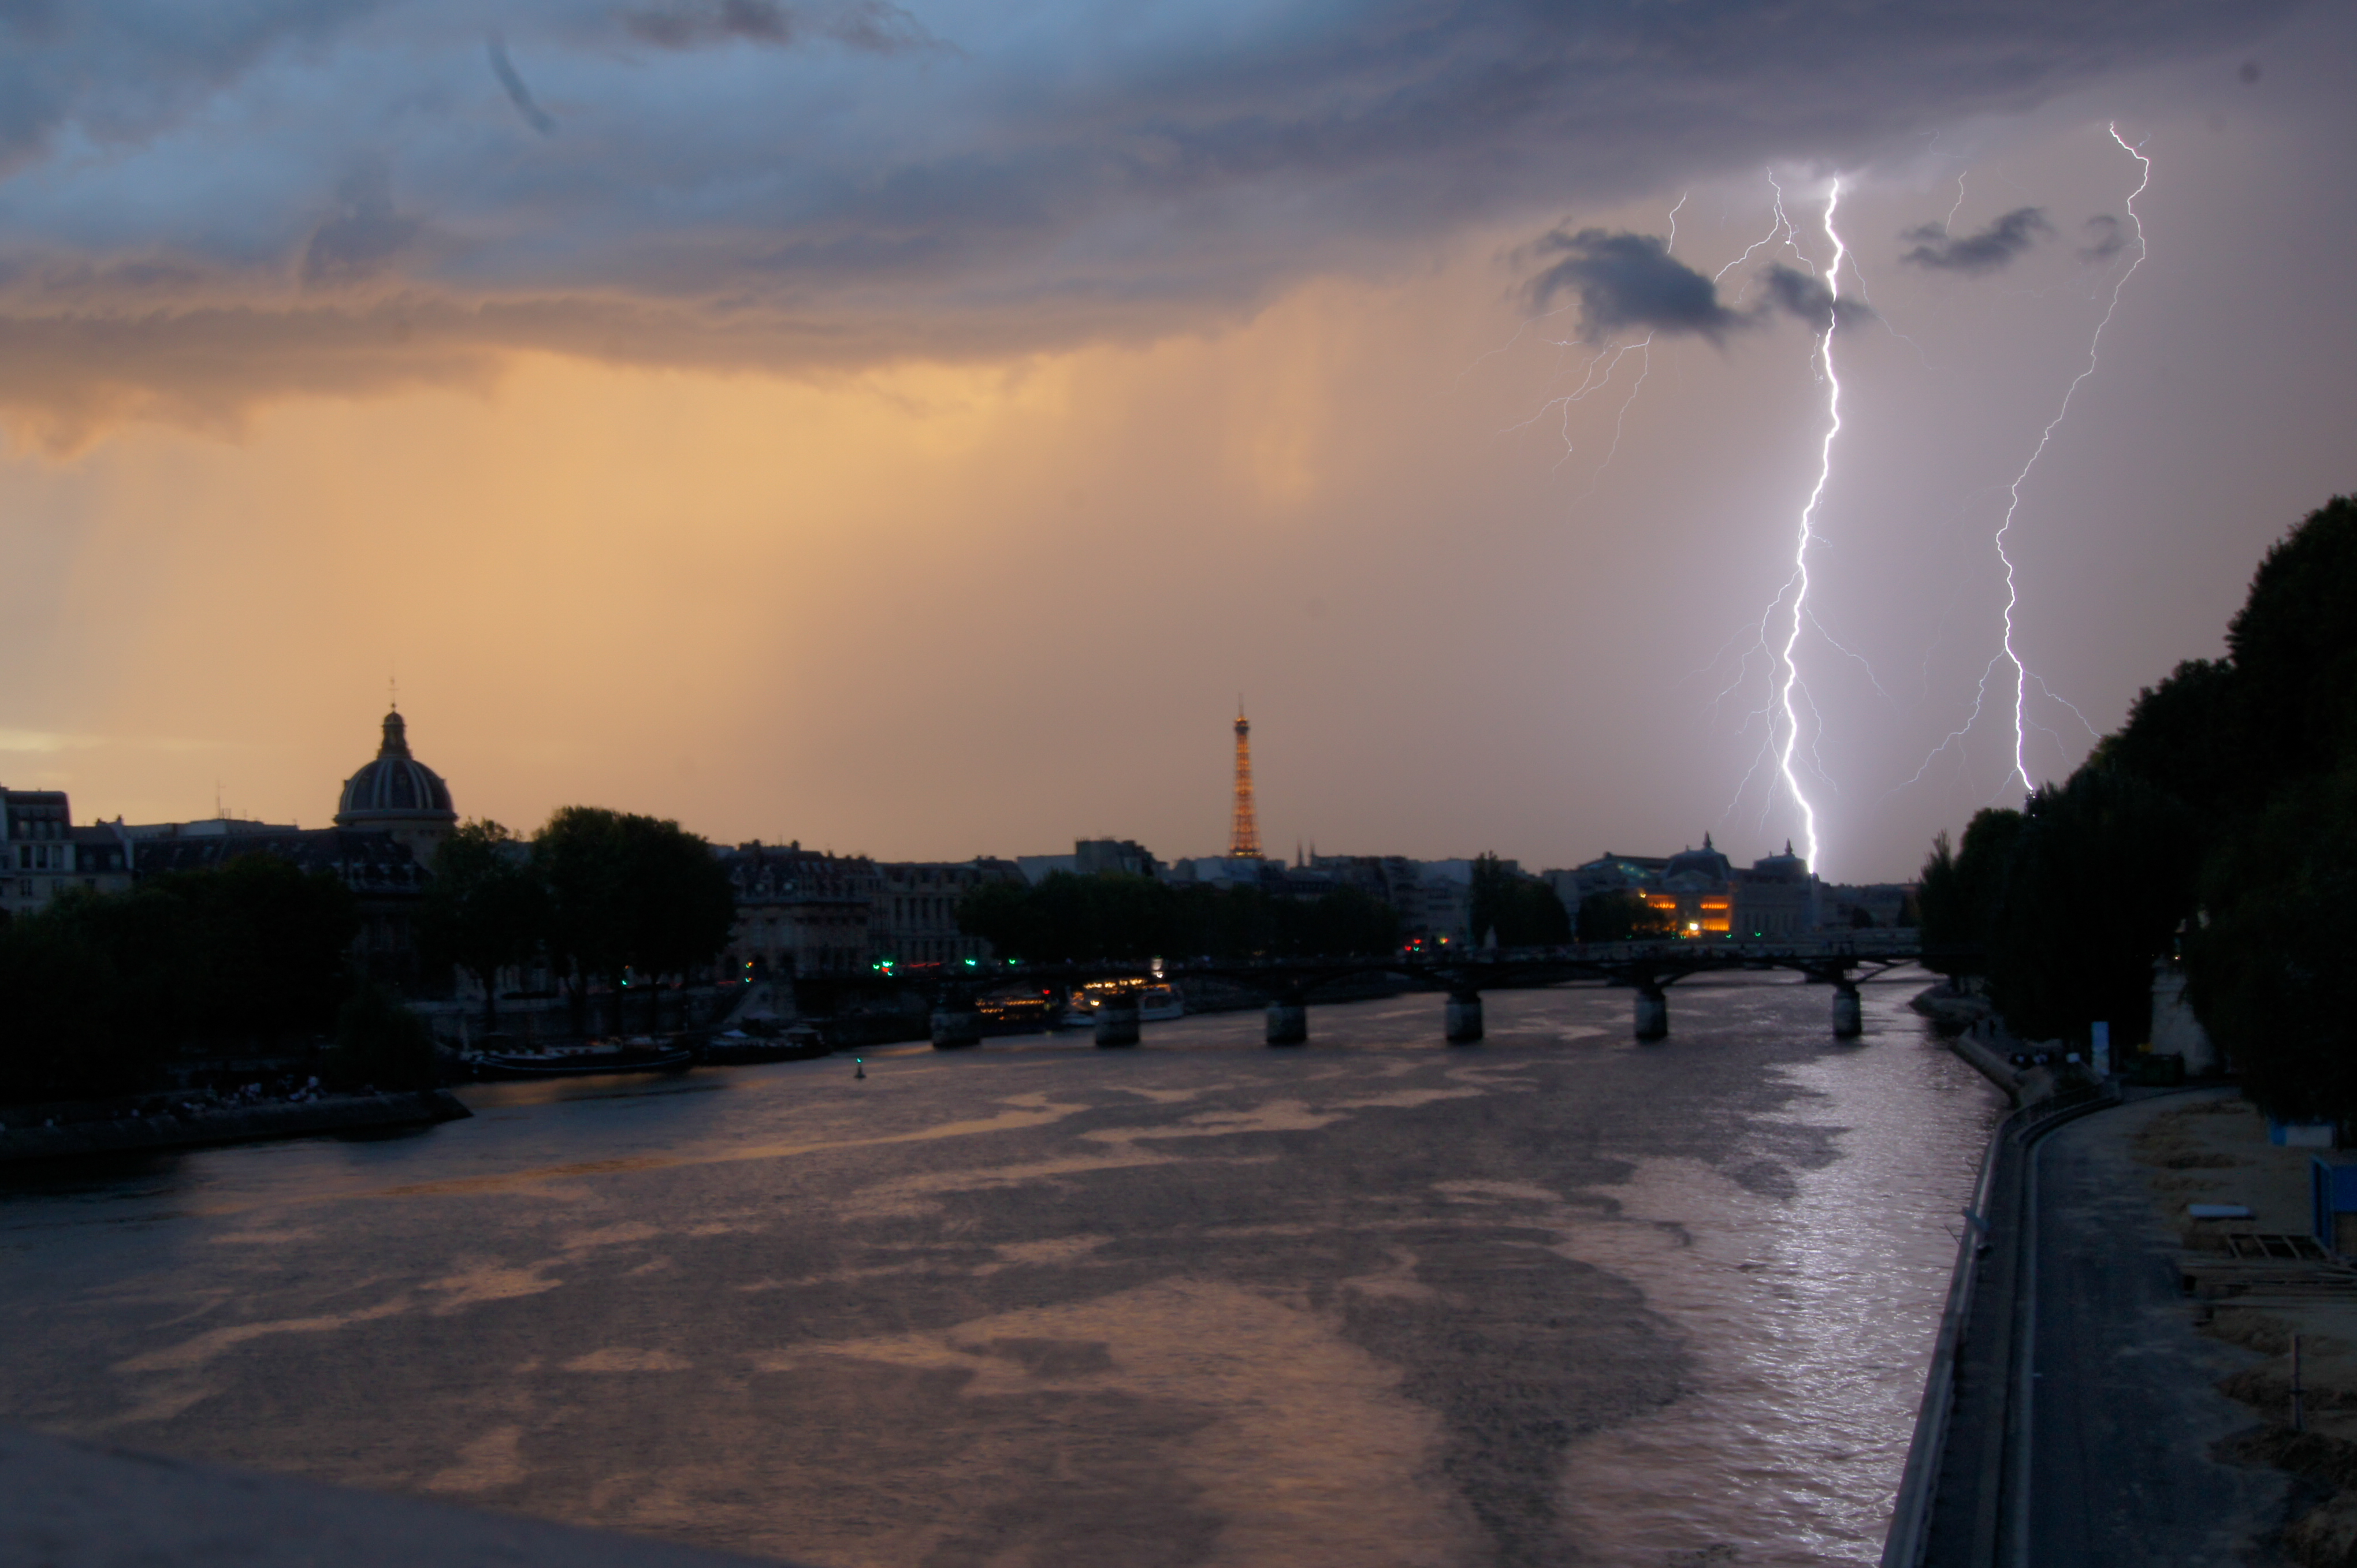 Thunderstorm in Paris, France.